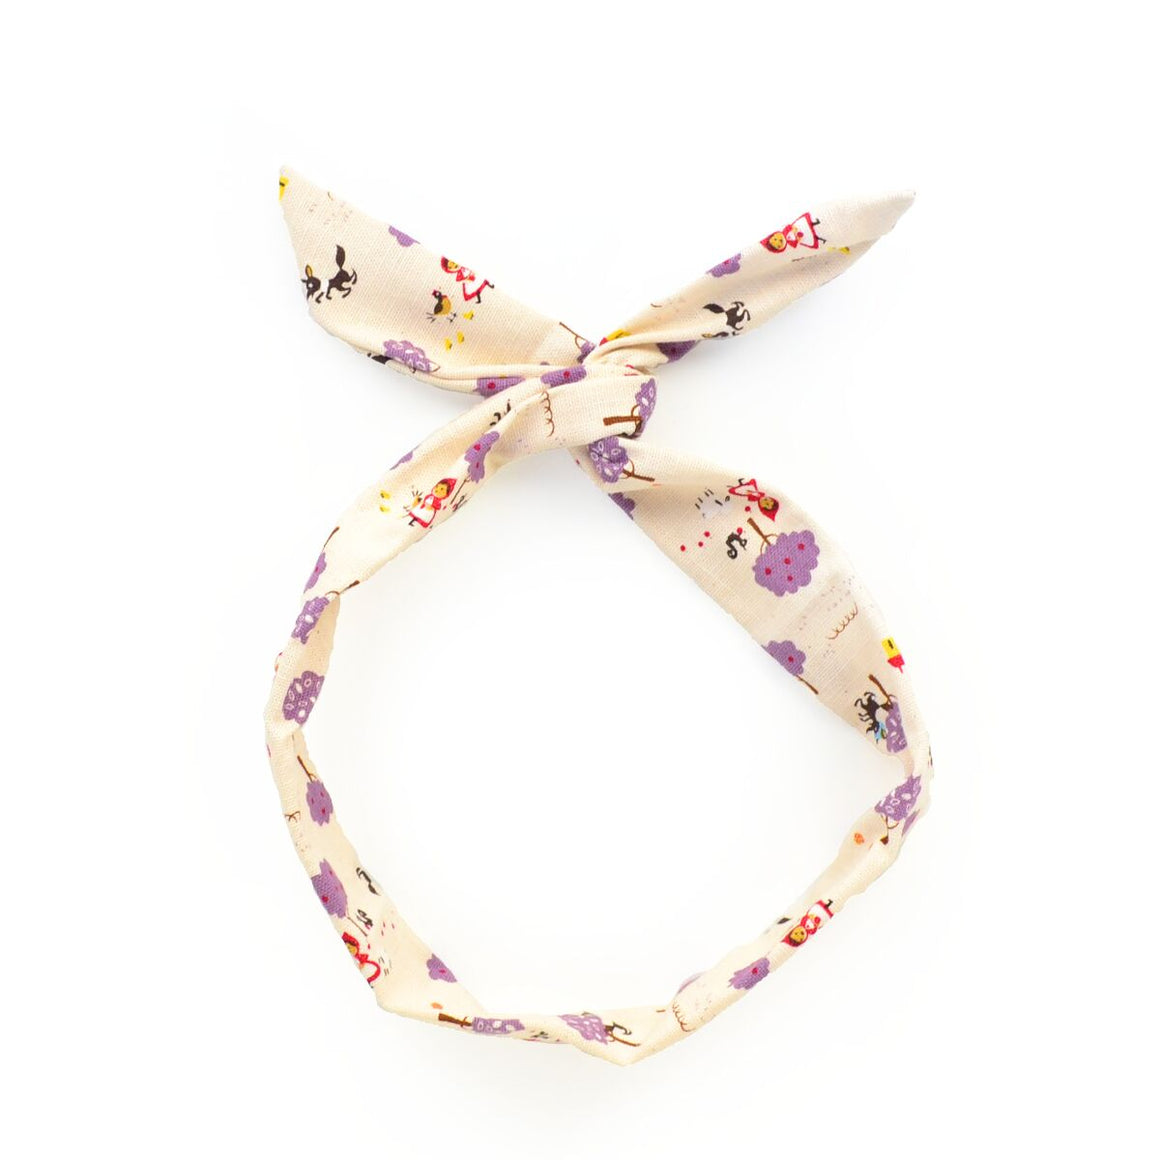 little lavender riding hood twist tie // hello shiso hair accessories for girls